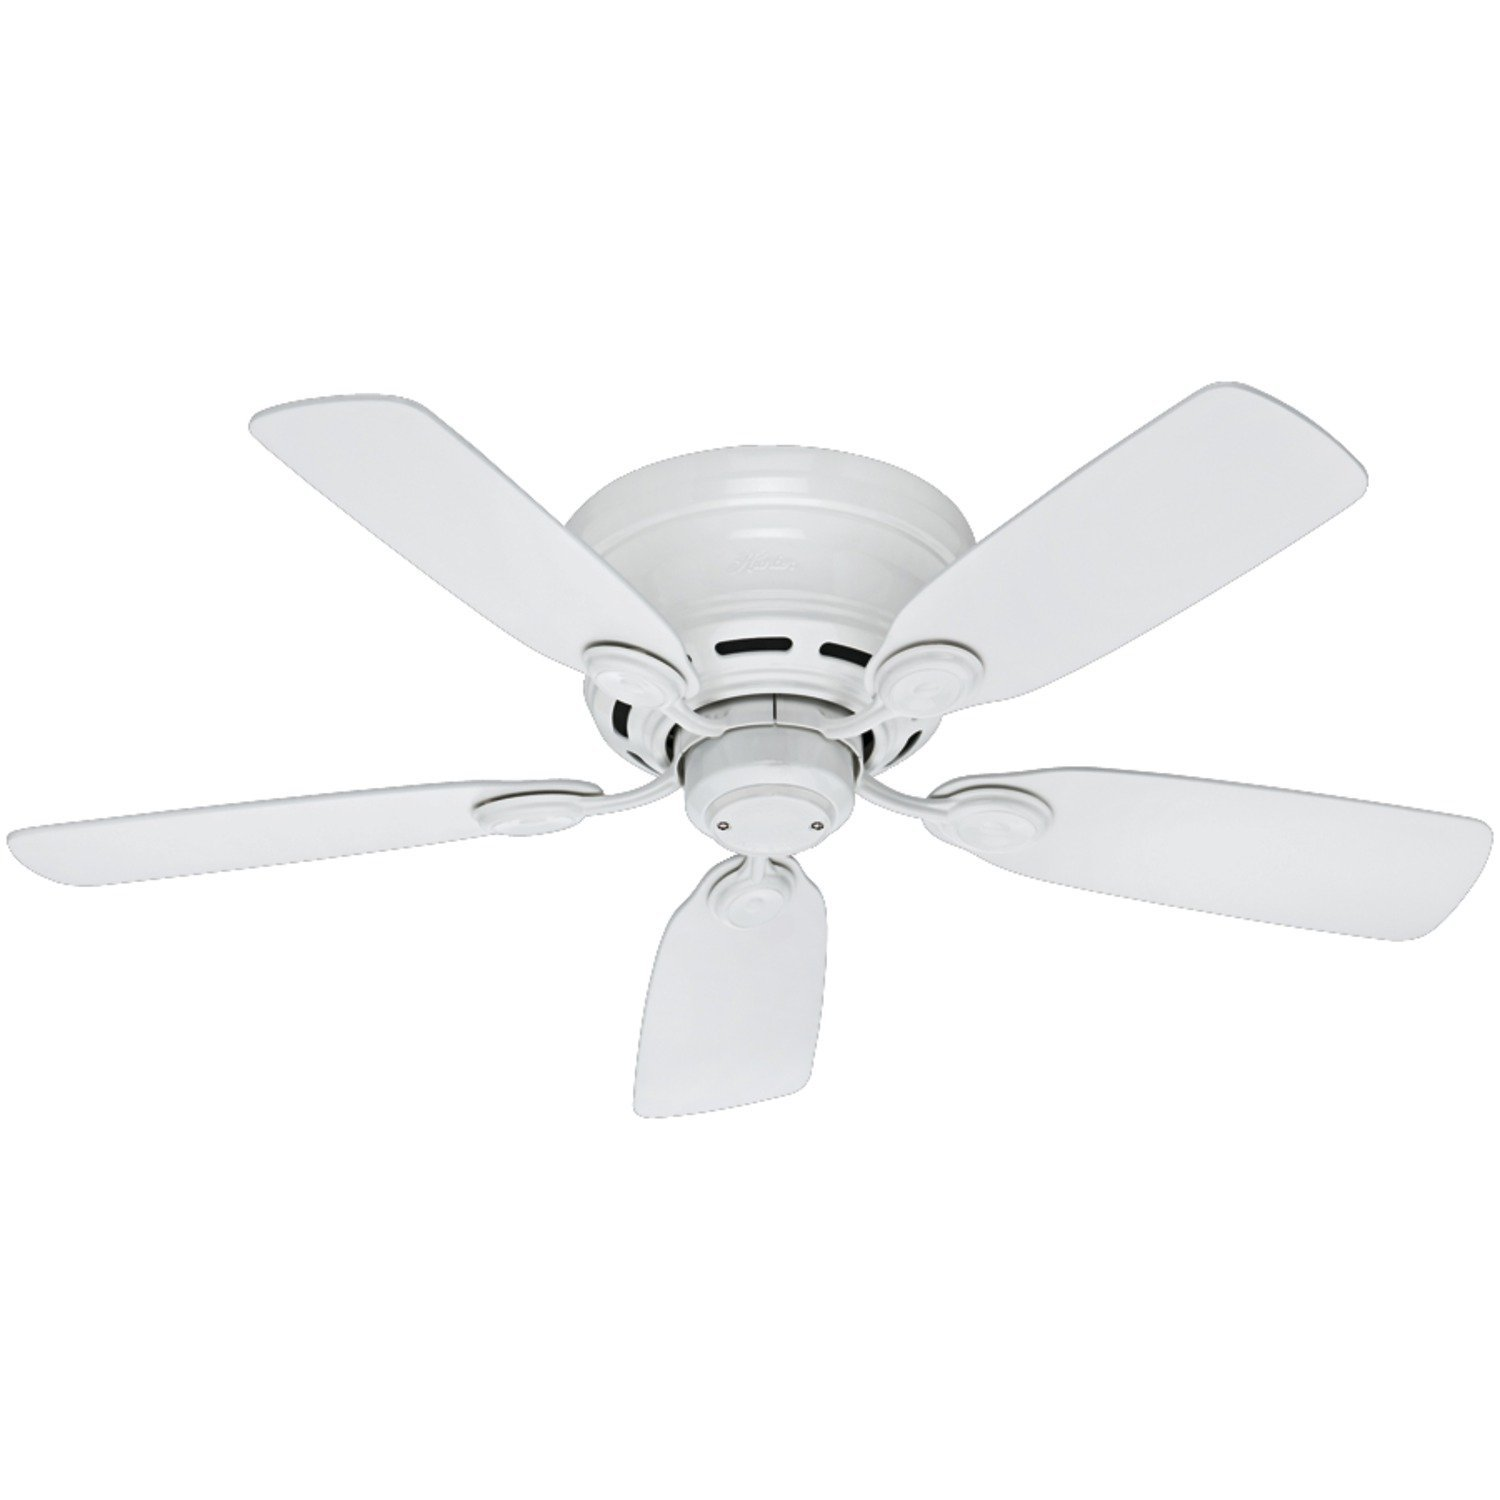 Long Blade Ceiling Fan Flush Mount Ceiling Fans Review Choose The Best